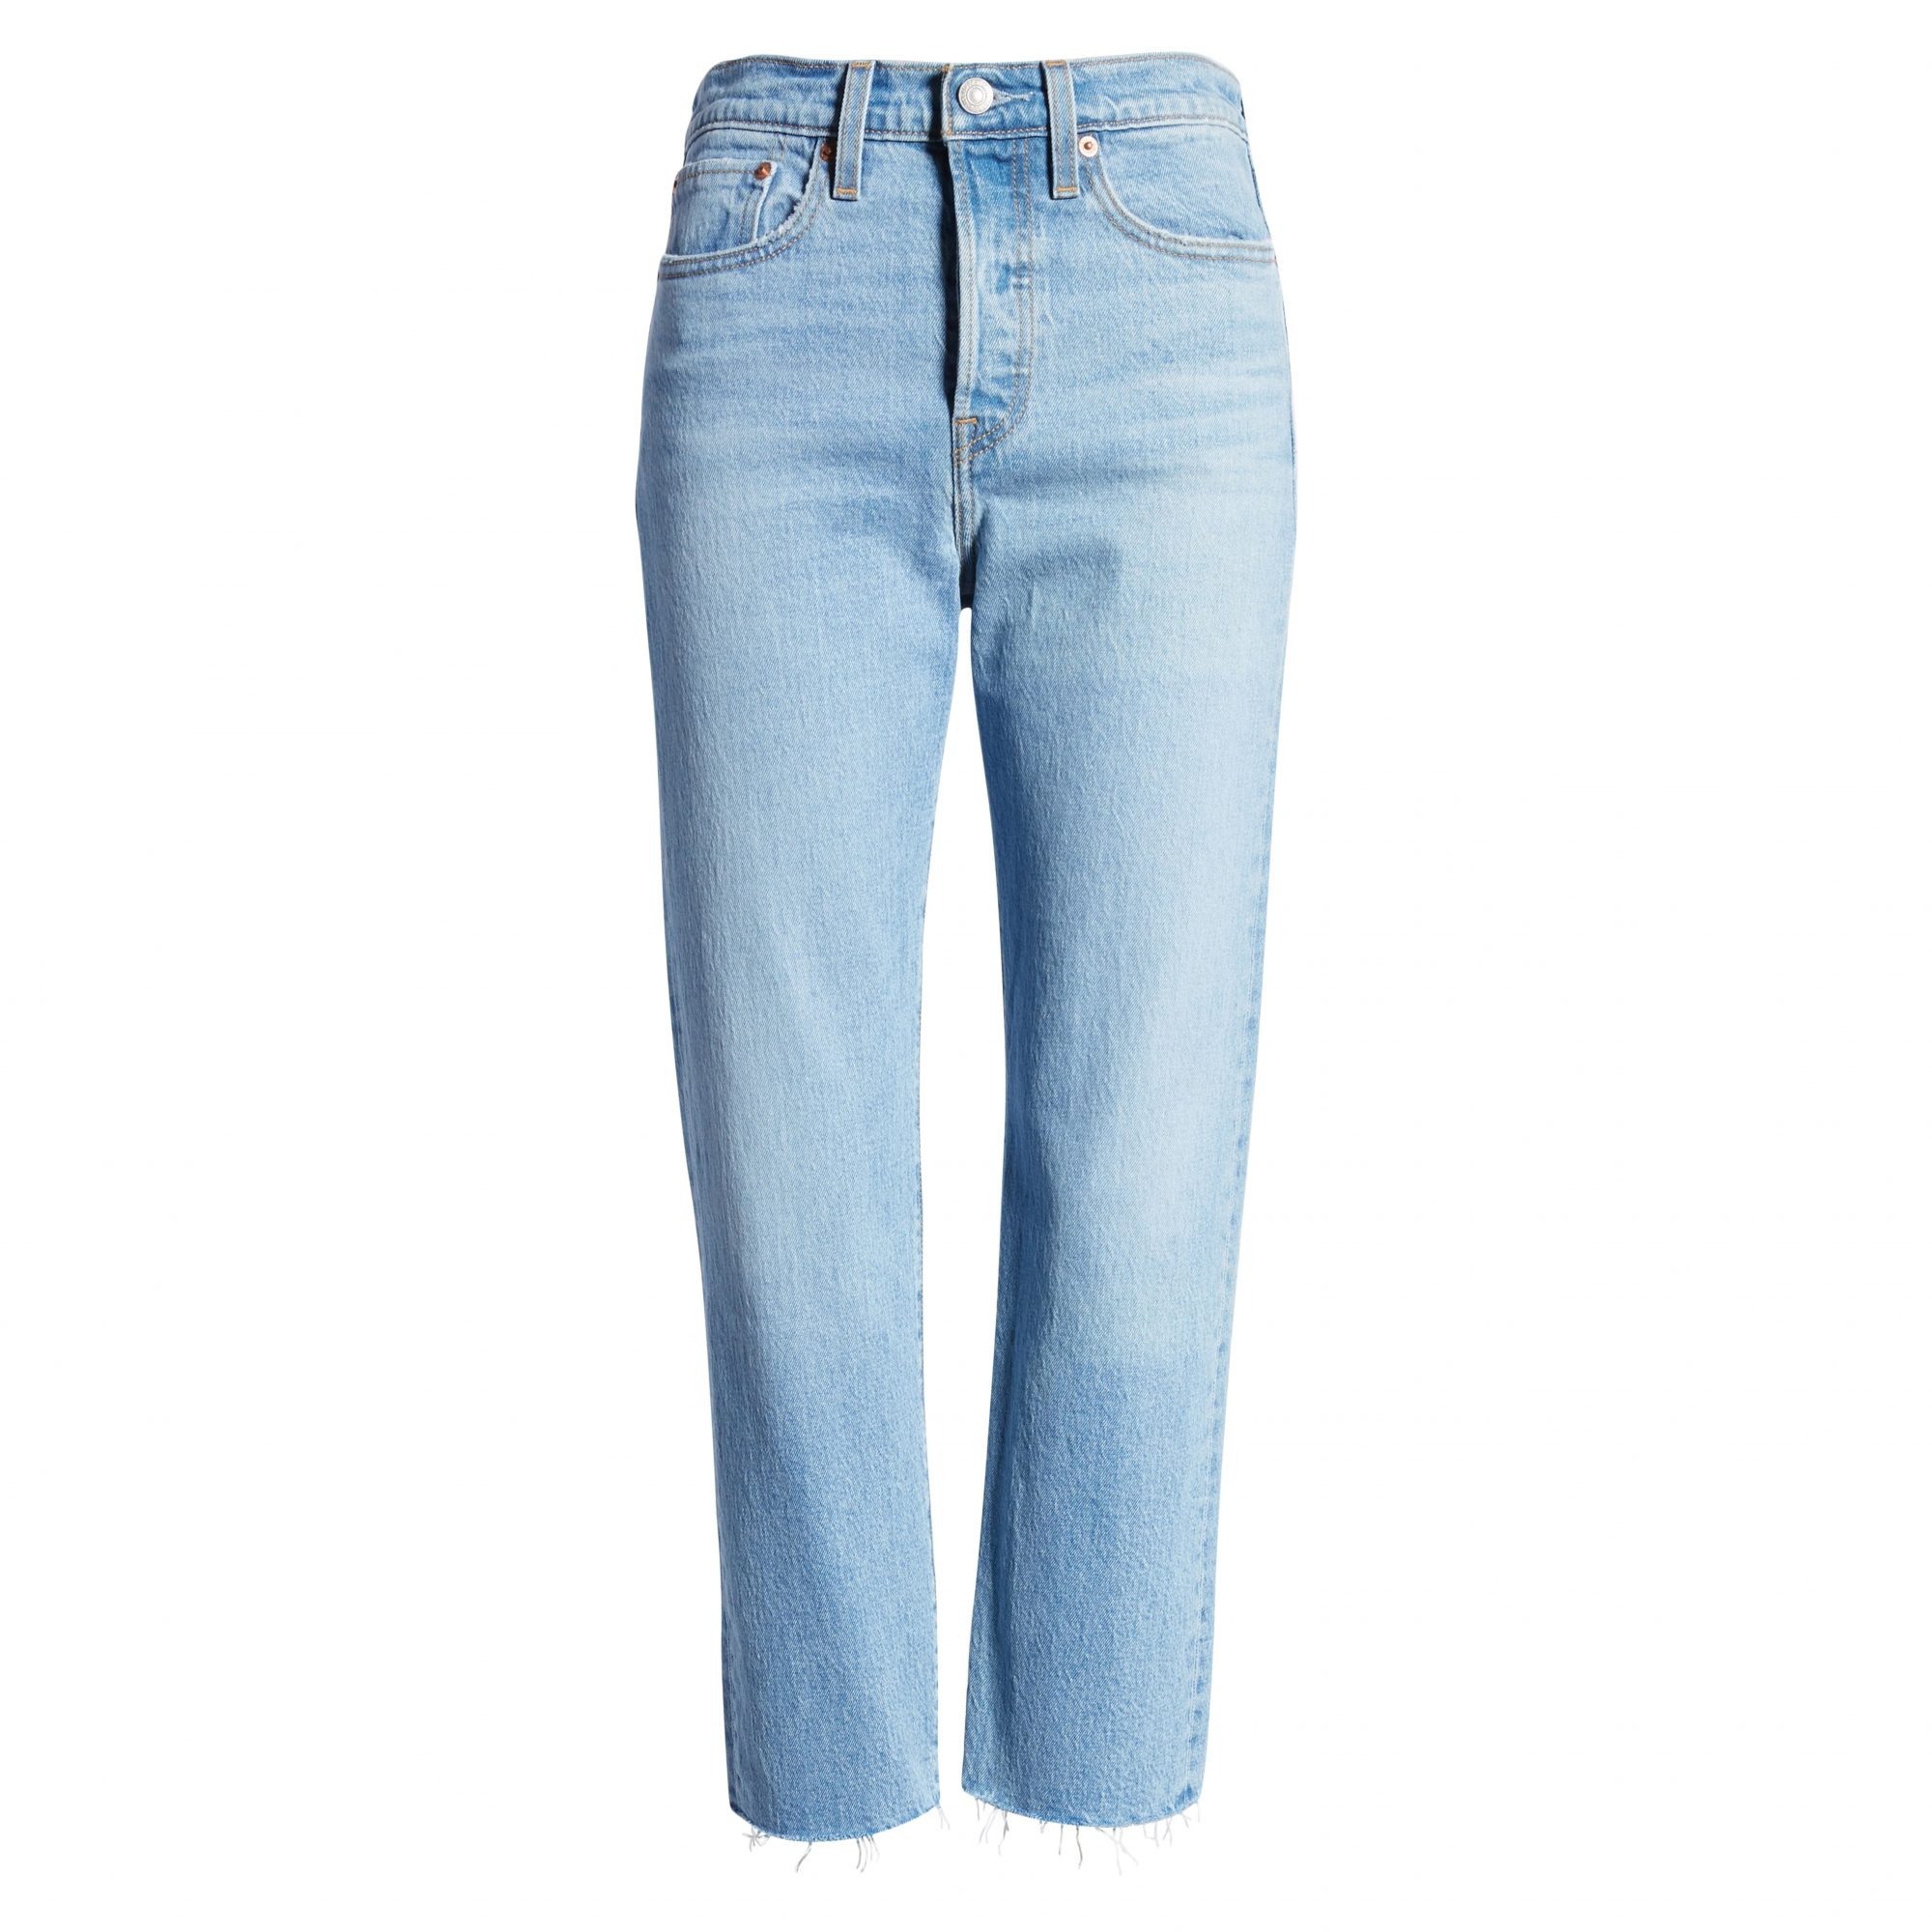 Levi's Wedgie High Waist Raw Hem Straight Leg Jeans